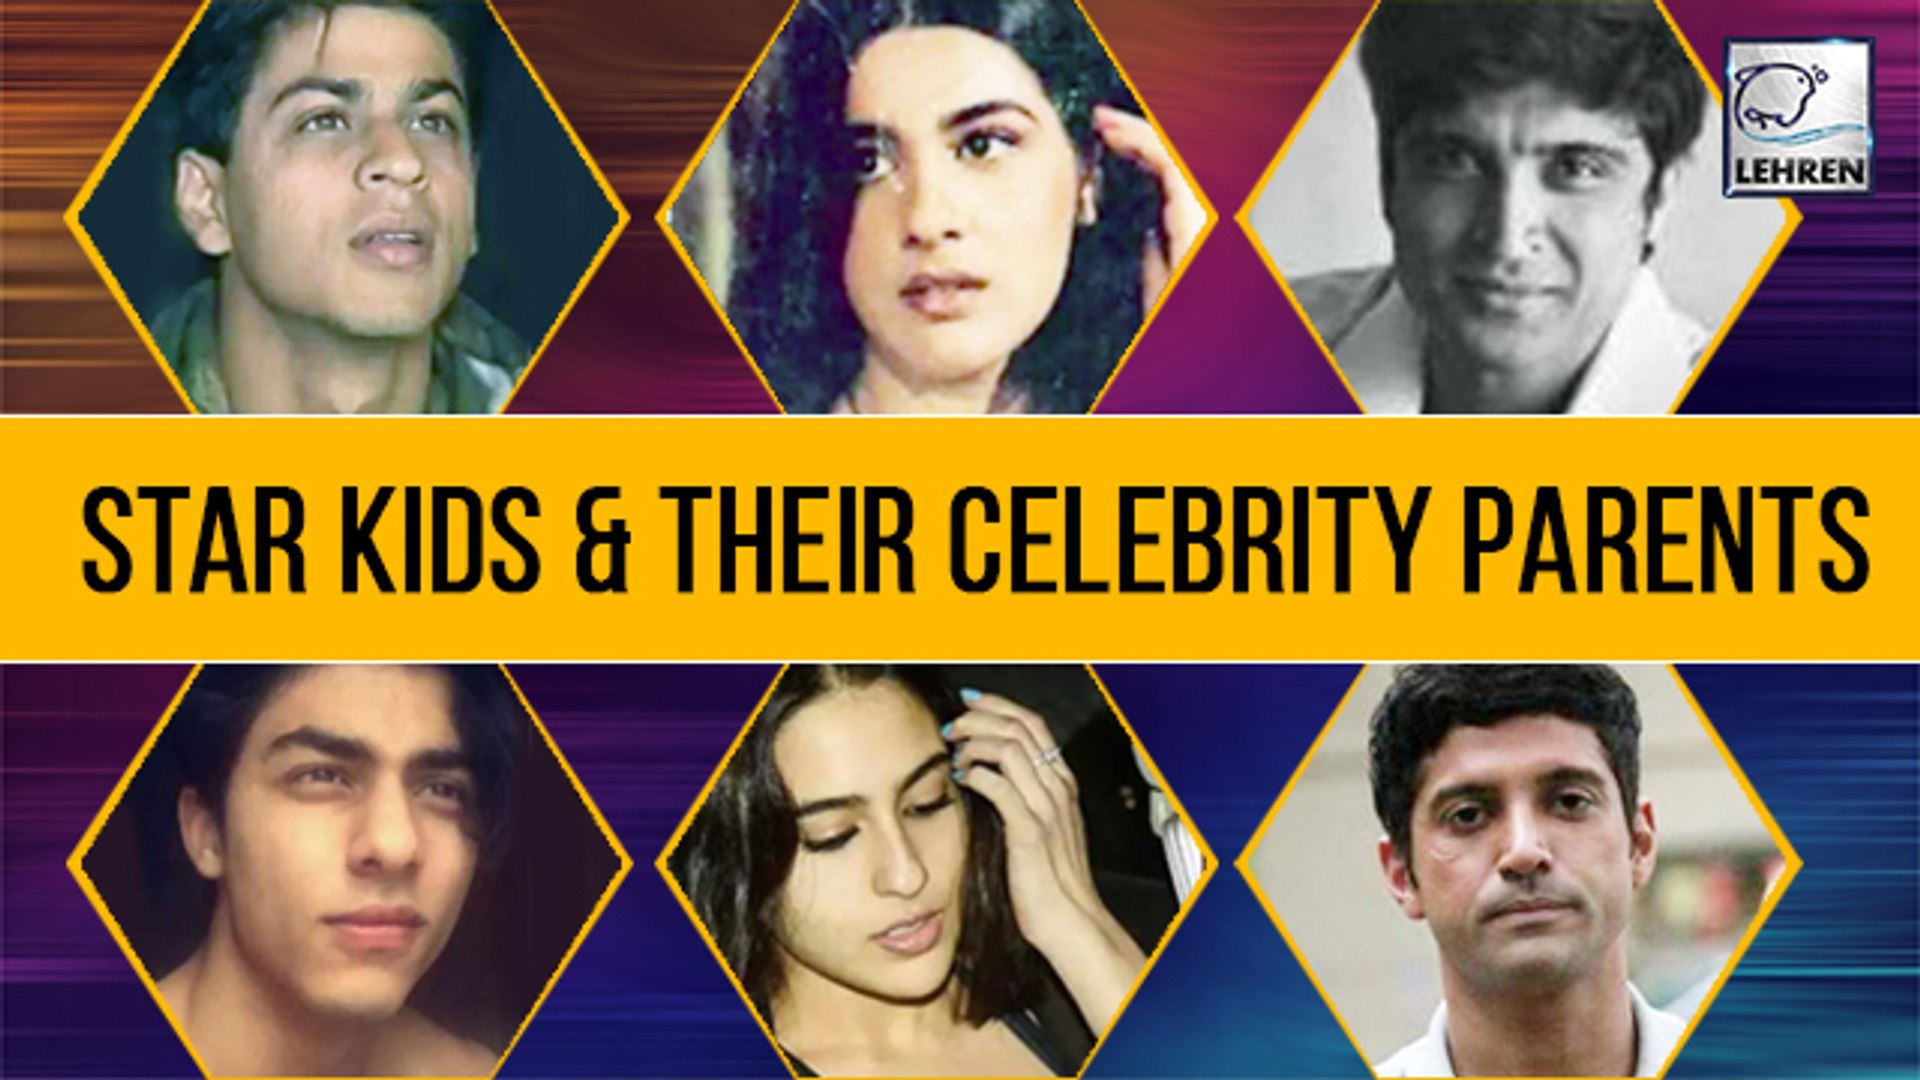 7 Star Kids Who Are Carbon Copy Of Their Celebrity Parents